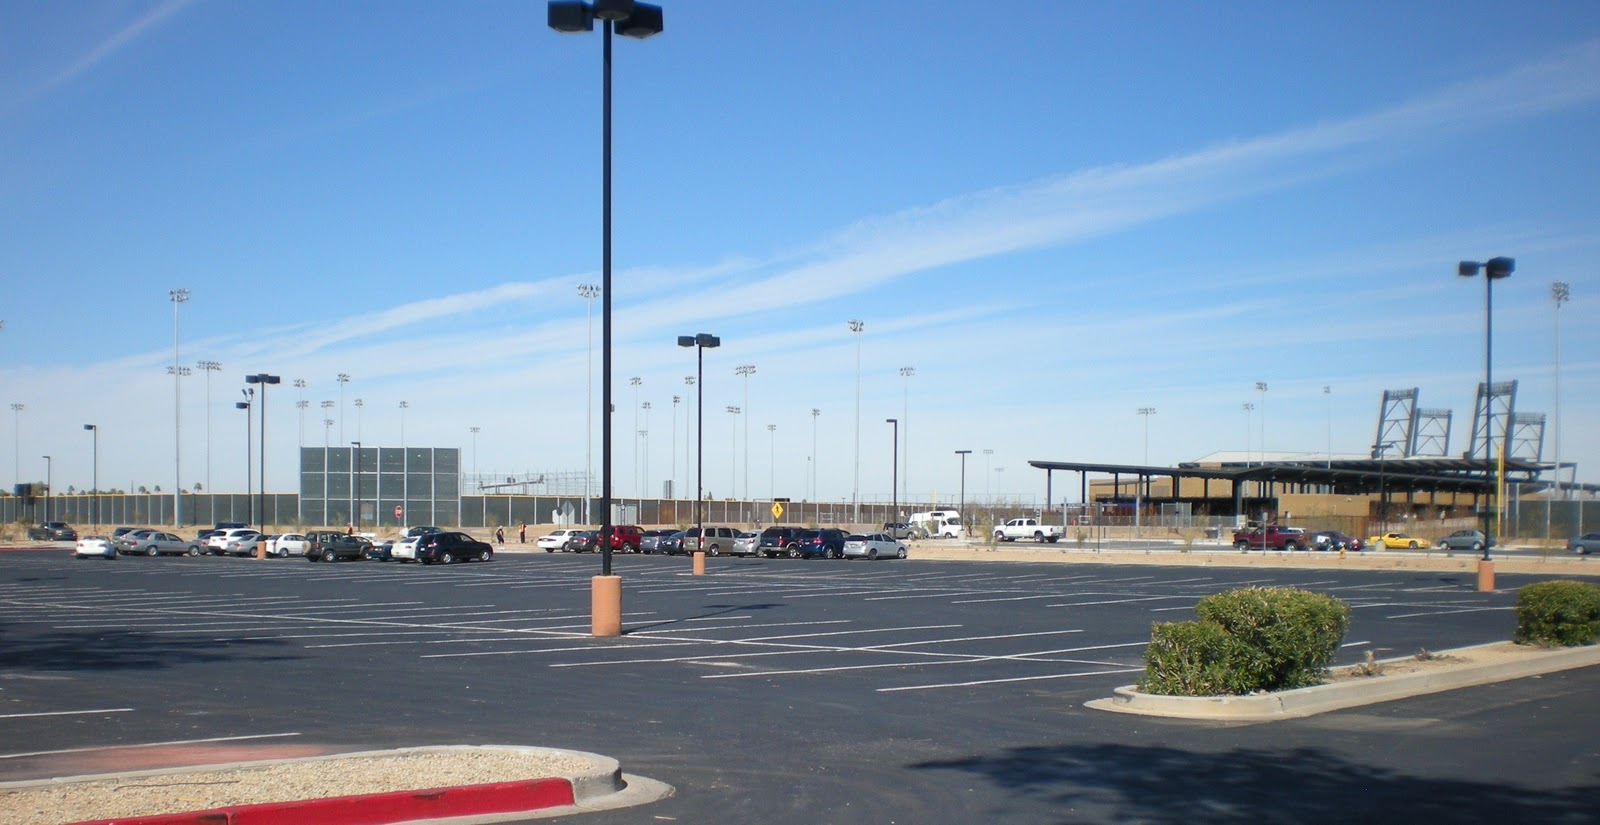 essay about parking lot This document was developed by the colorado asphalt pavement association (capa) it is intended to be used as a resource in the design and construction of asphalt parking lots in colorado.